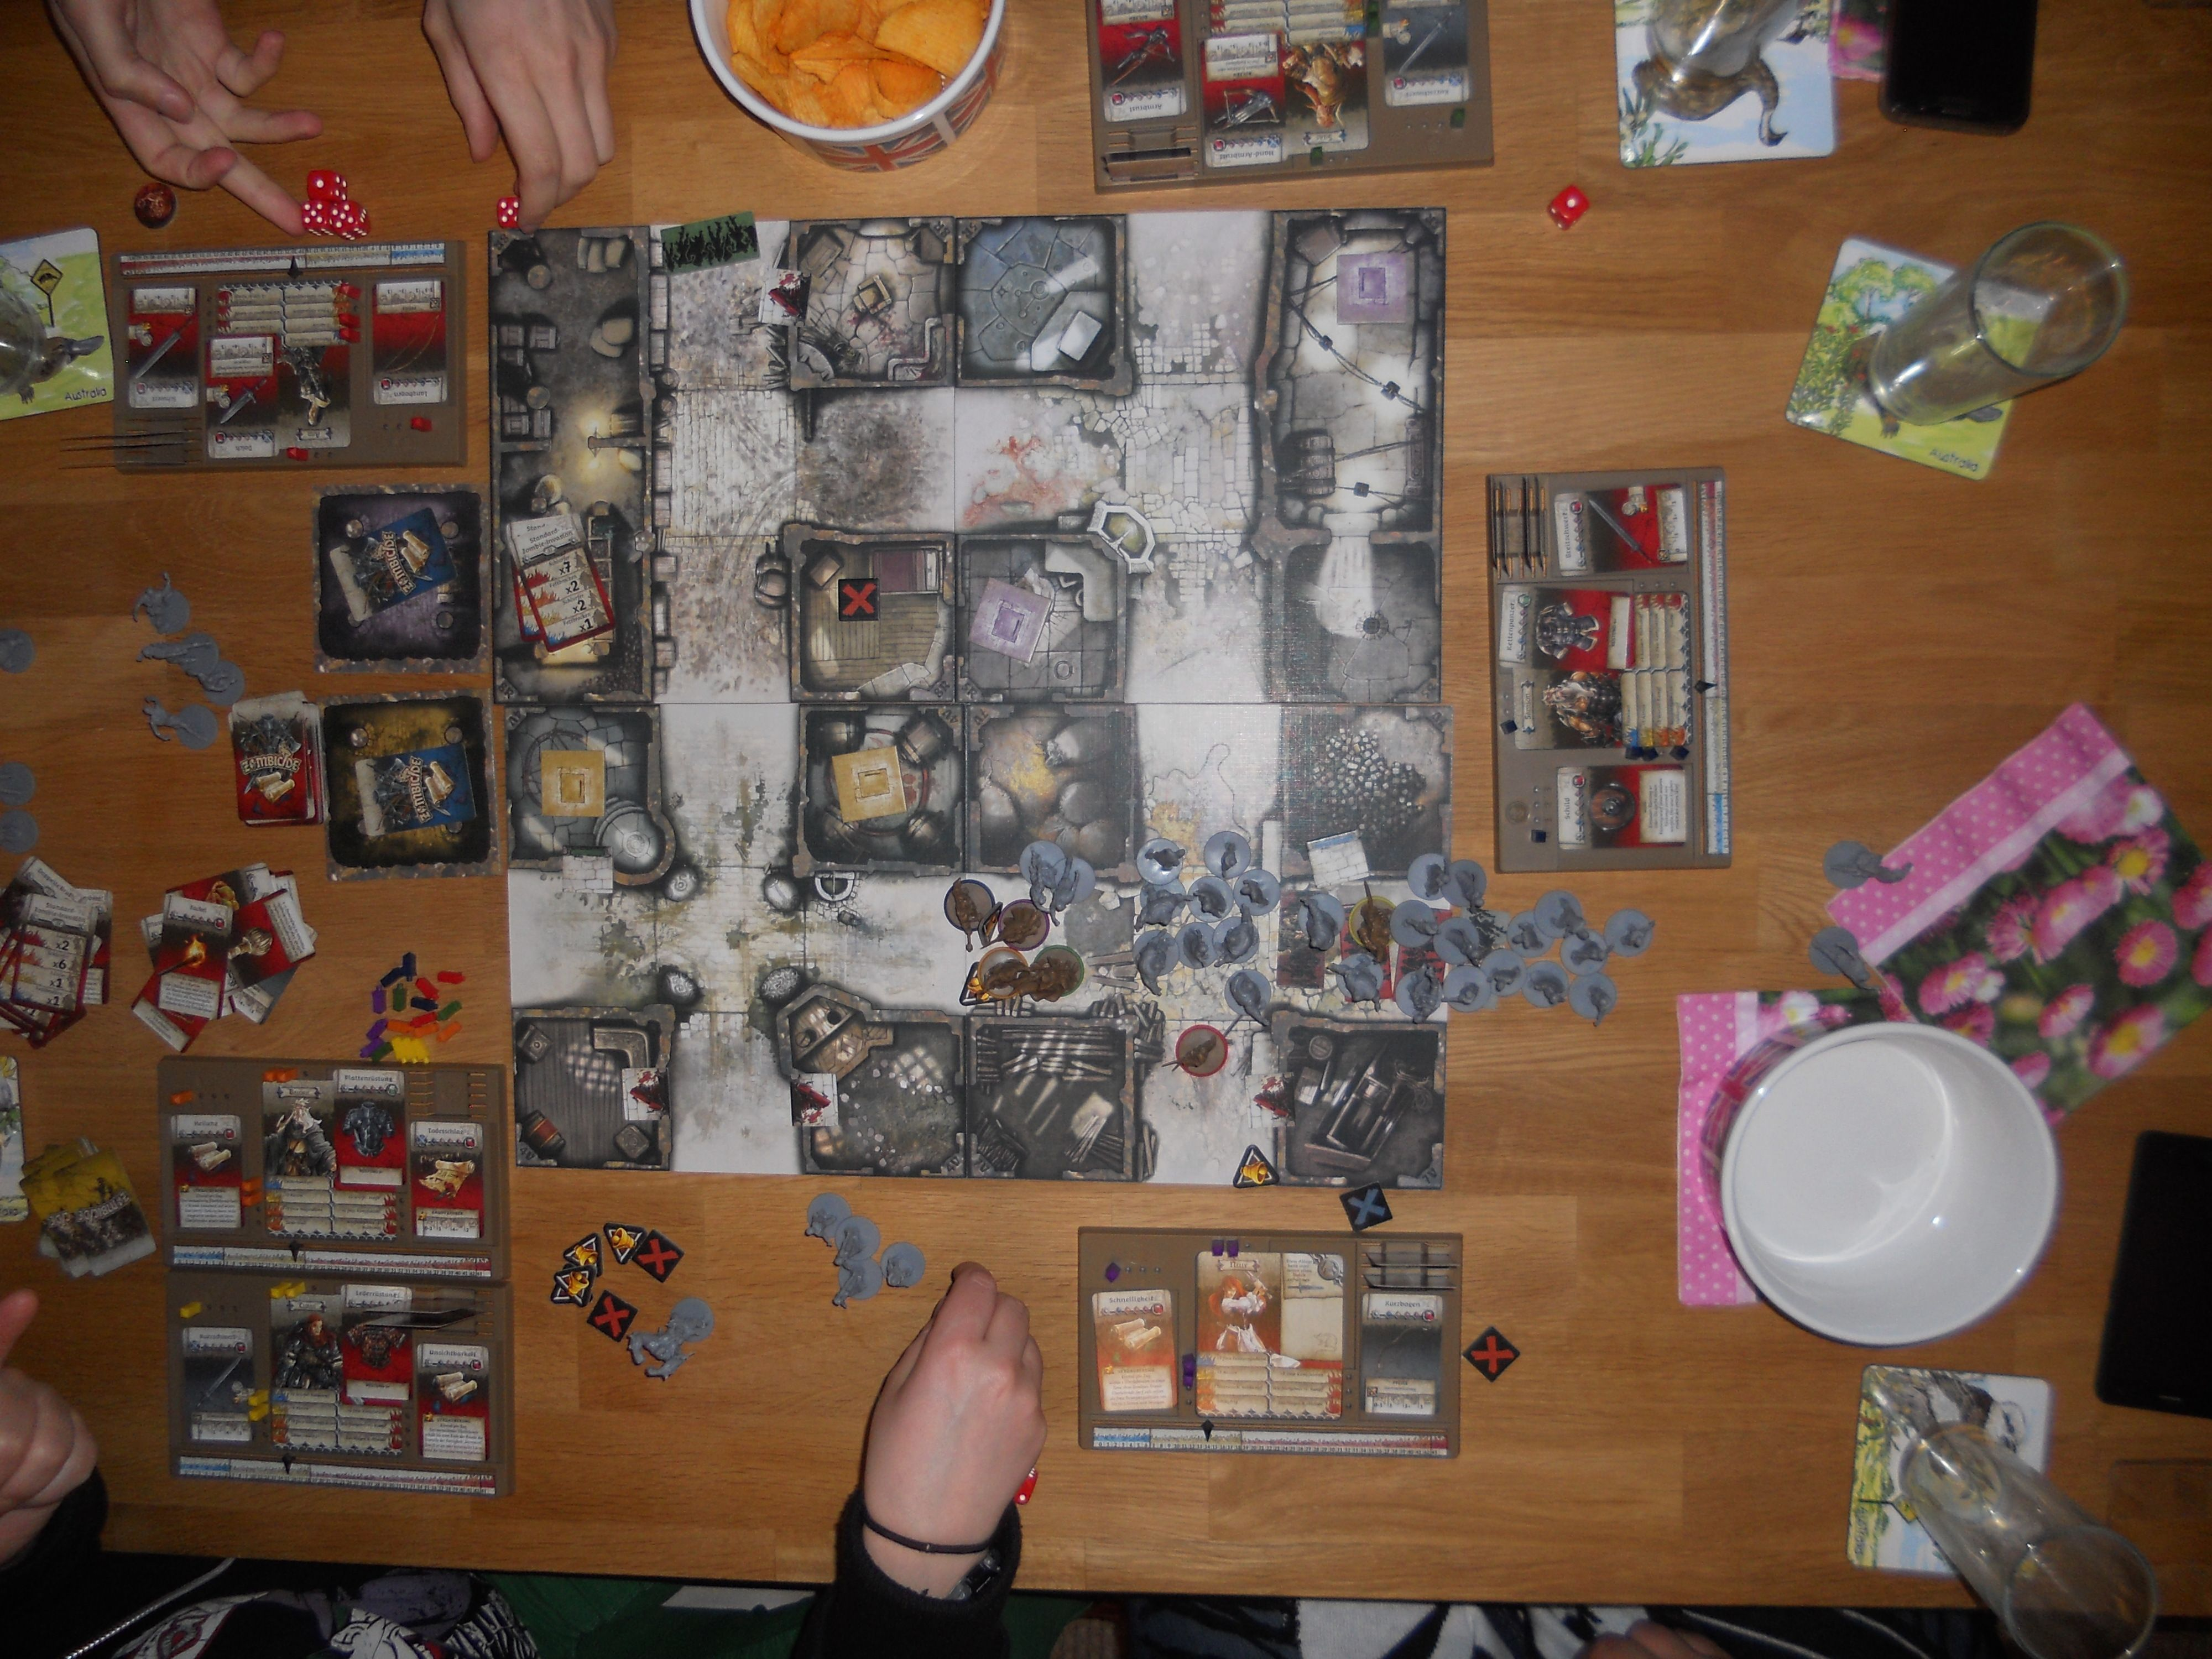 Boardgames And Cardgames At Wohnzimmer Cafebar Dortmund 060918